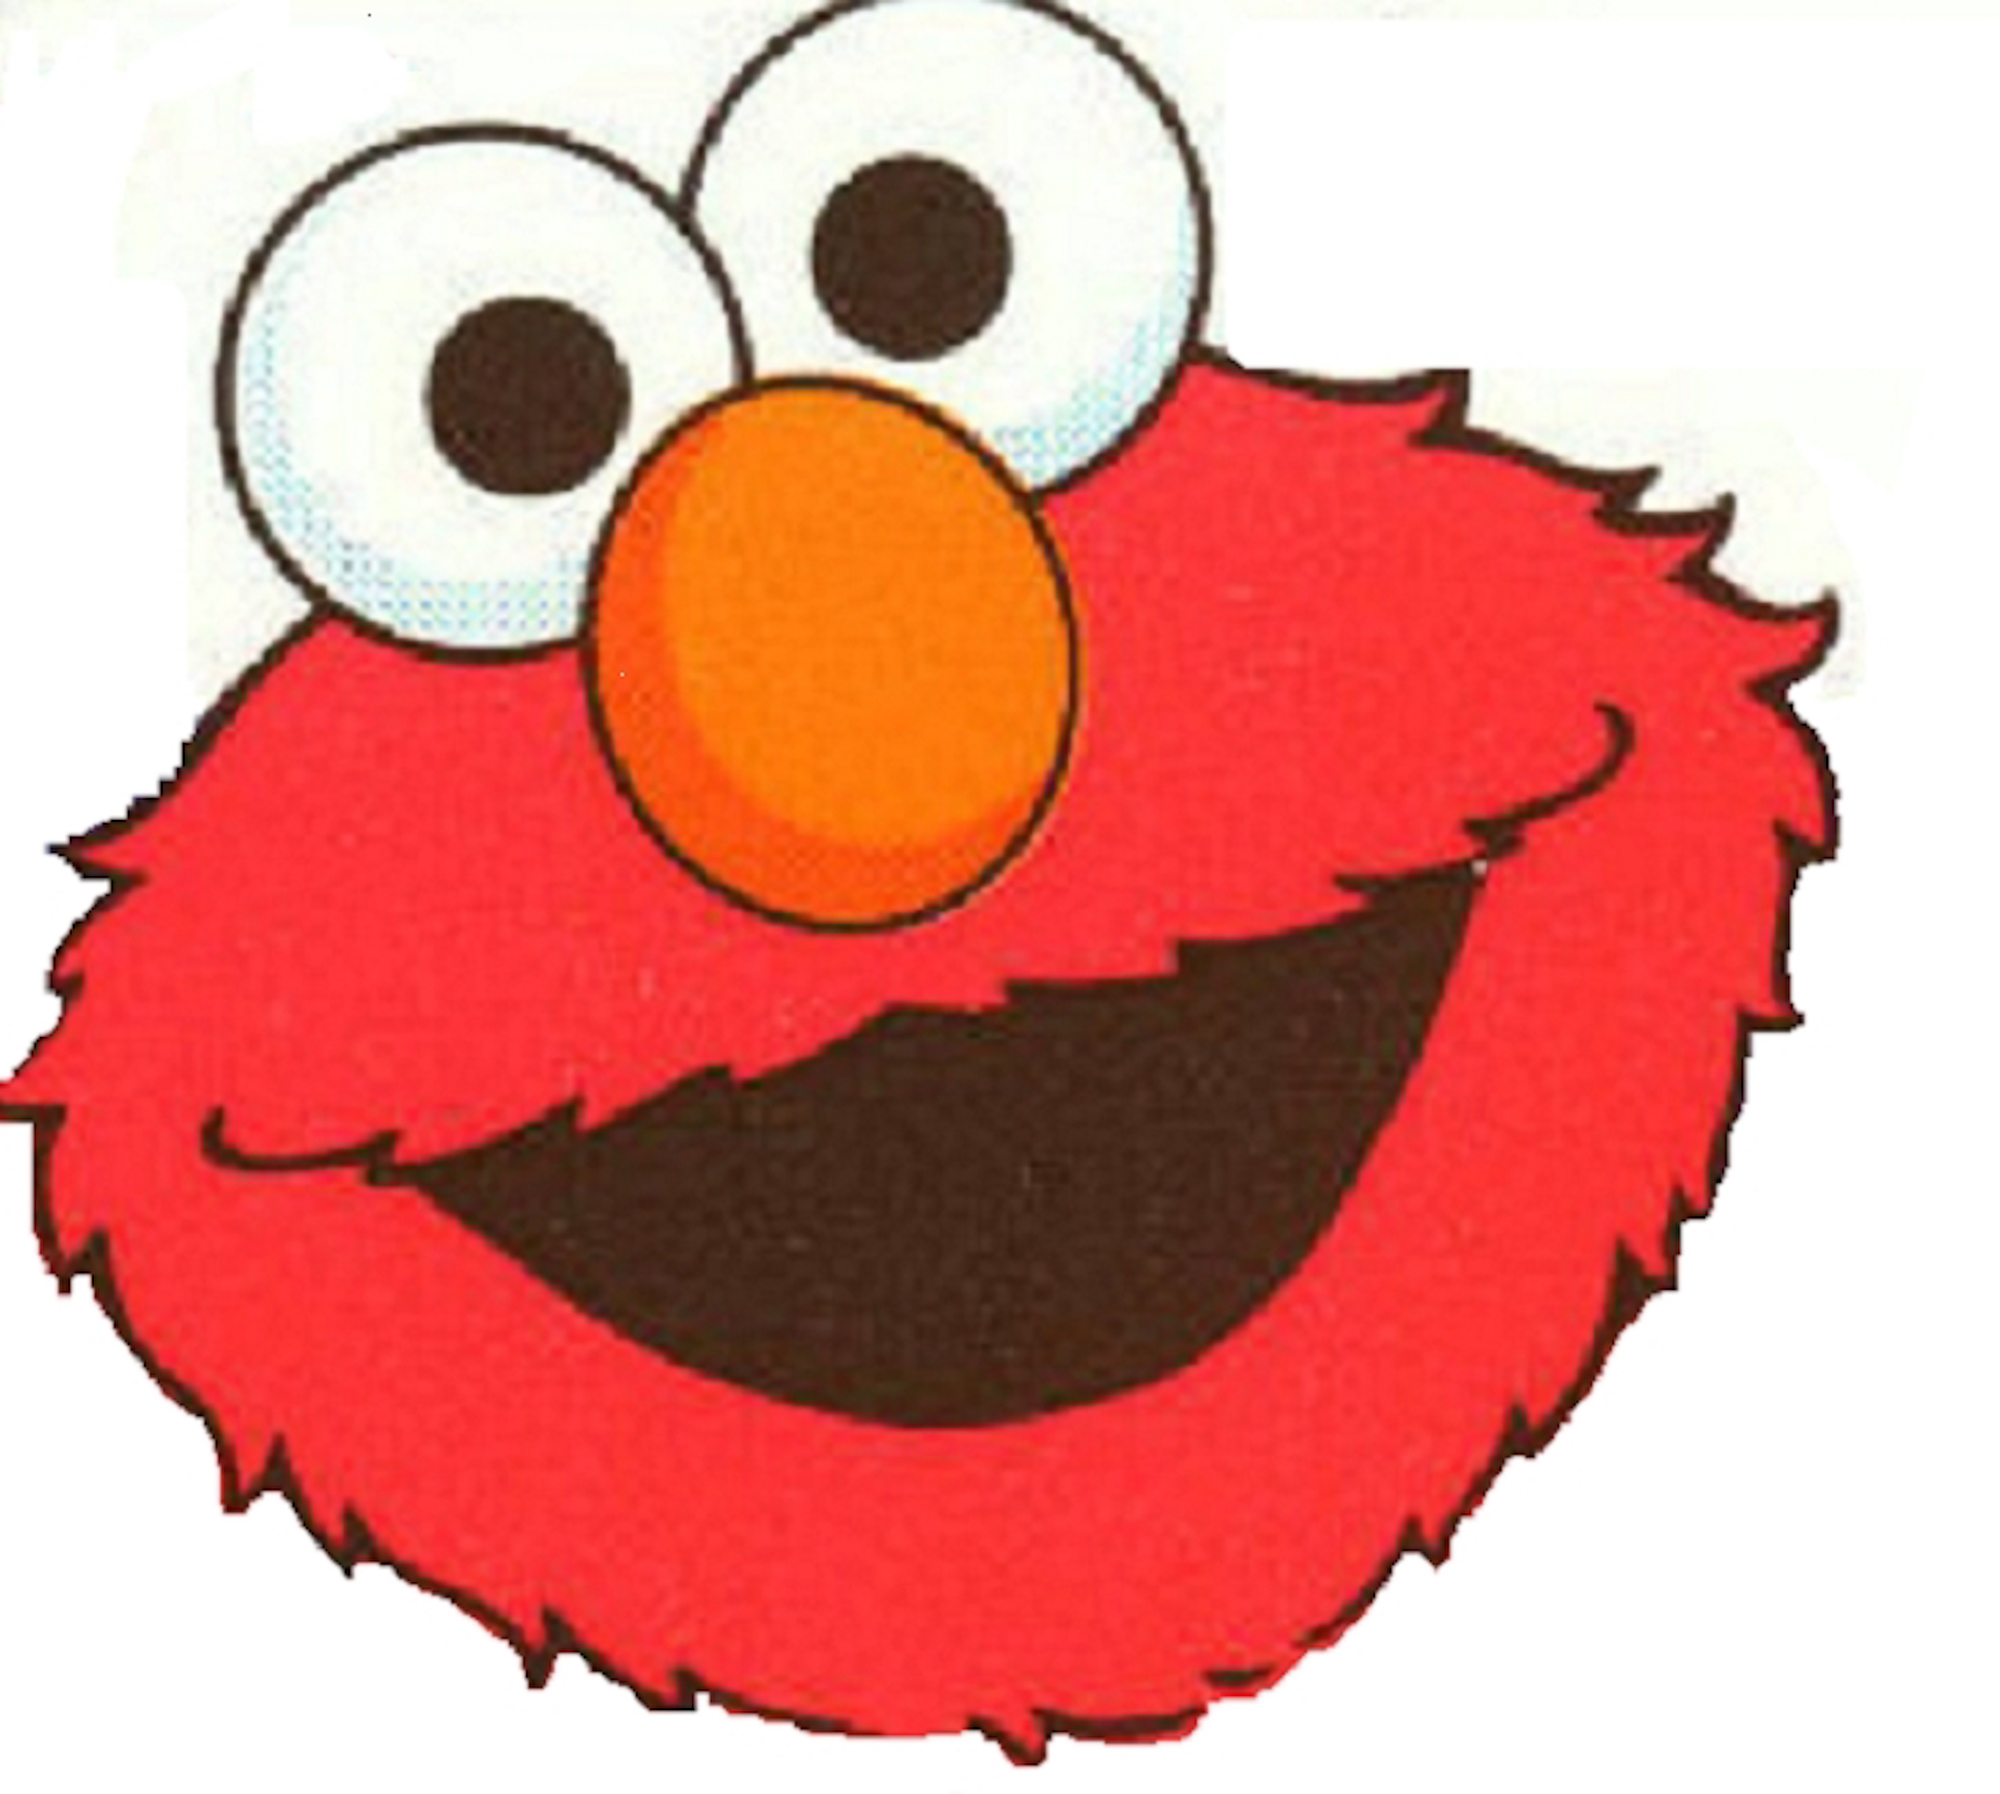 Elmo Template Vinyls Bags And Balloon Template On Pinterest